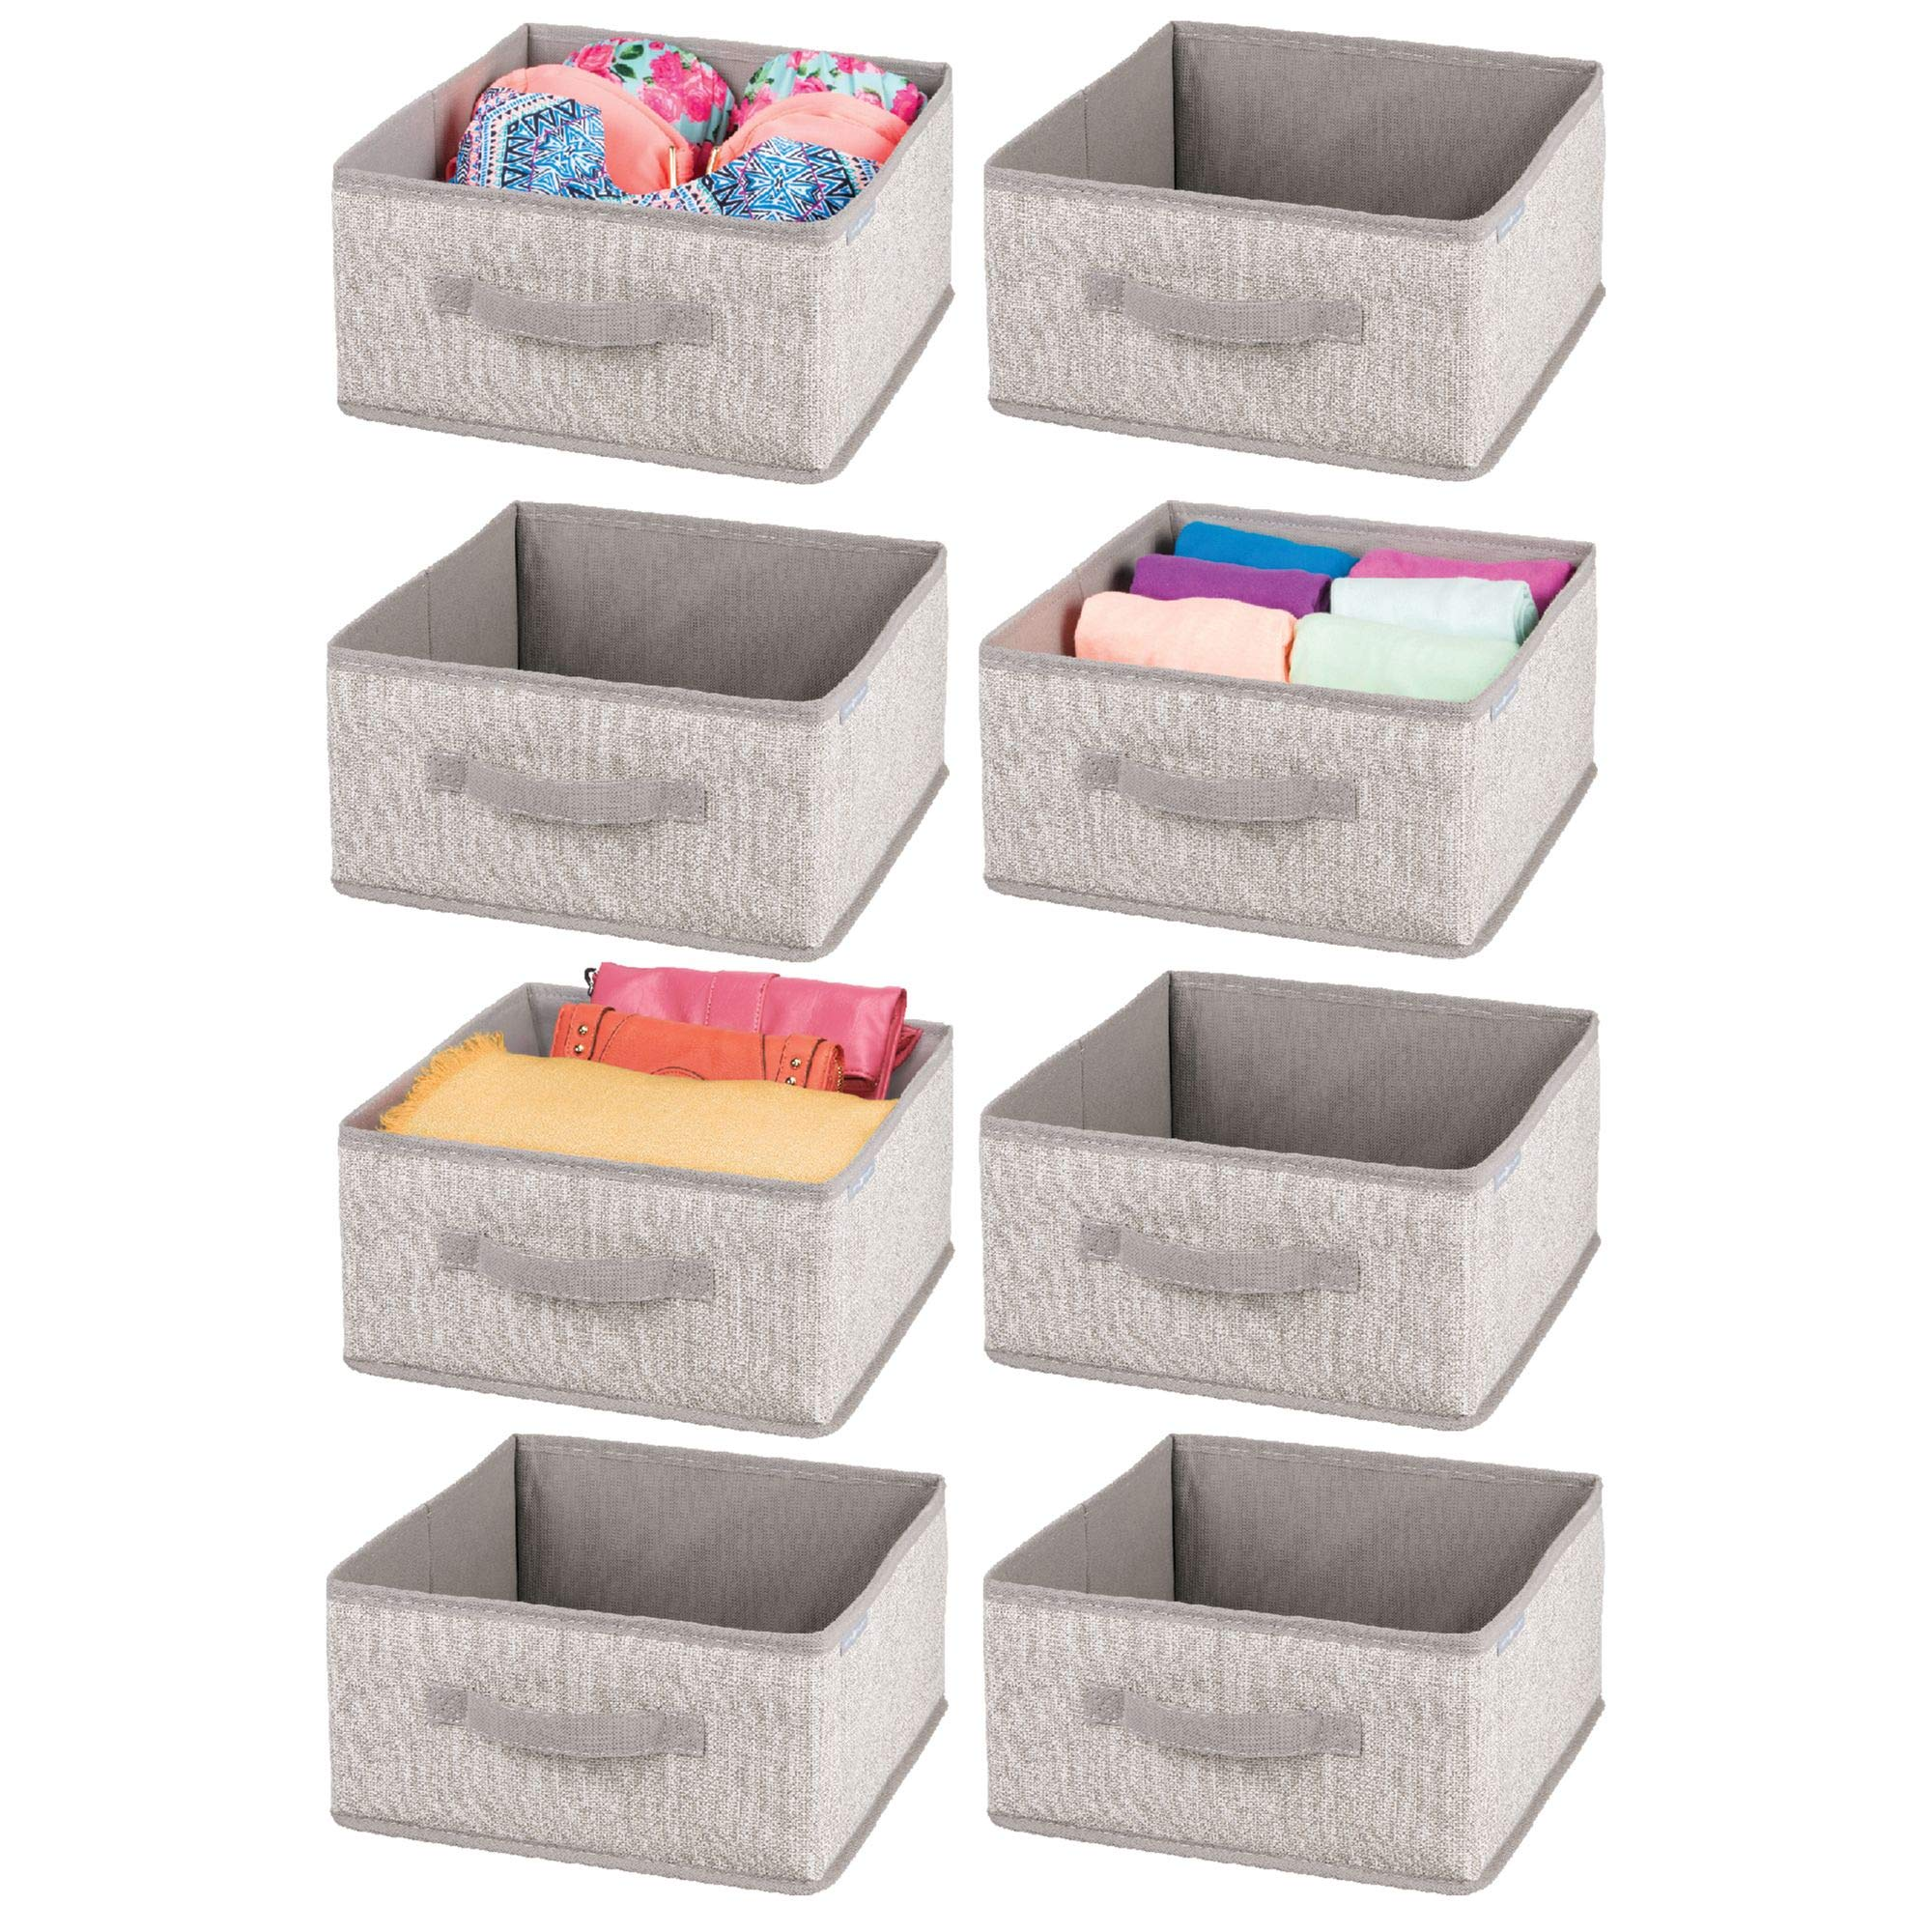 mDesign Soft Fabric Closet Storage Organizers Holders Bins Boxes - Front Handle, for Closet, Bedroom, Bathroom, Home Office Cubes Cubical Furniture Organization - 5.5'' high - Pack of 8, Linen/Tan